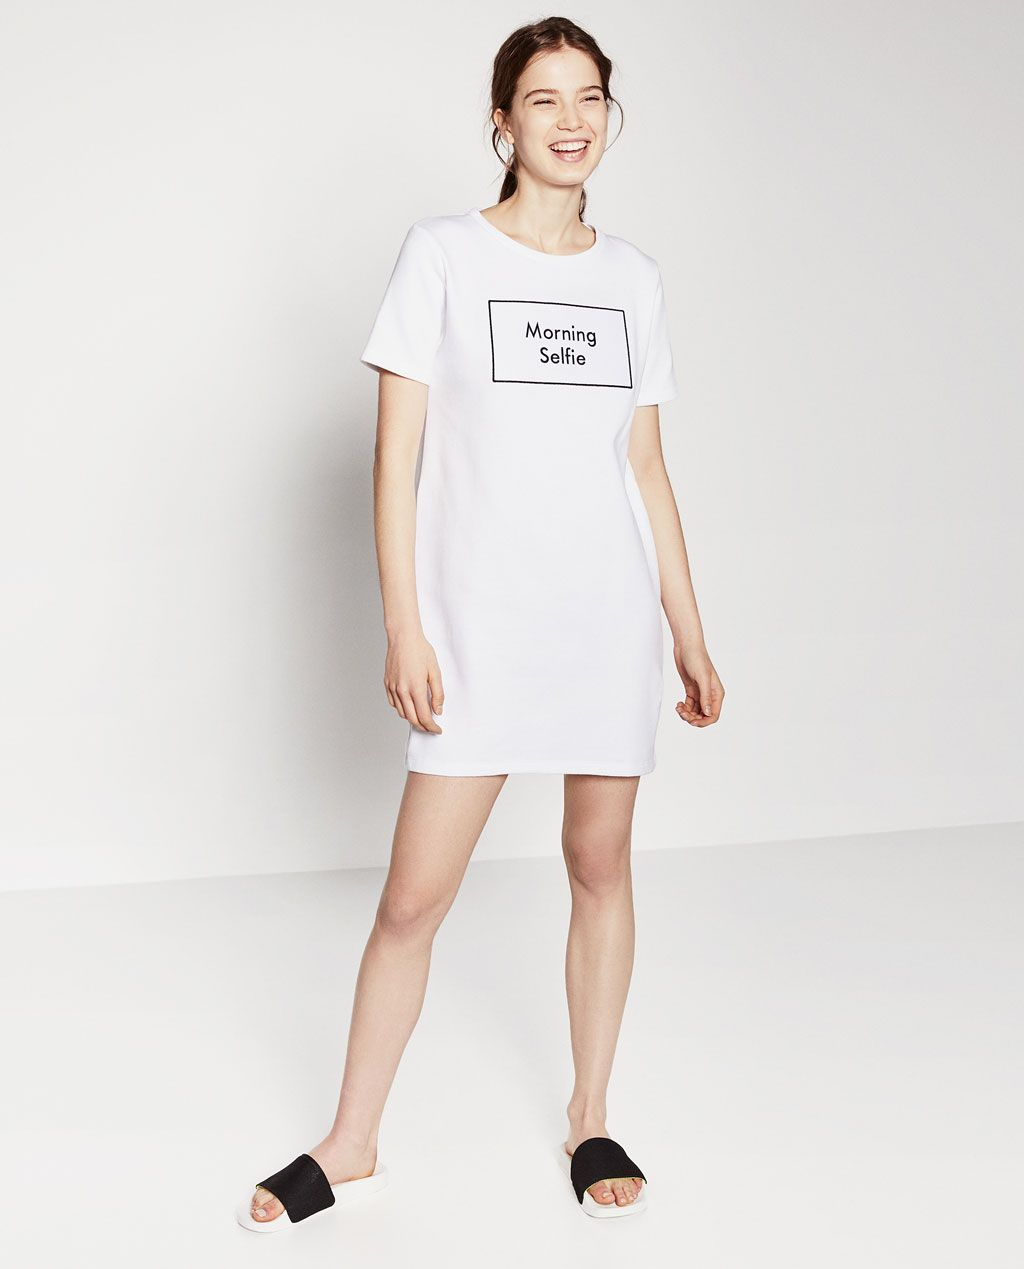 504831c0 Zara Morning Selfie Shirt Dress | ZARA Казахстан | College Student ...